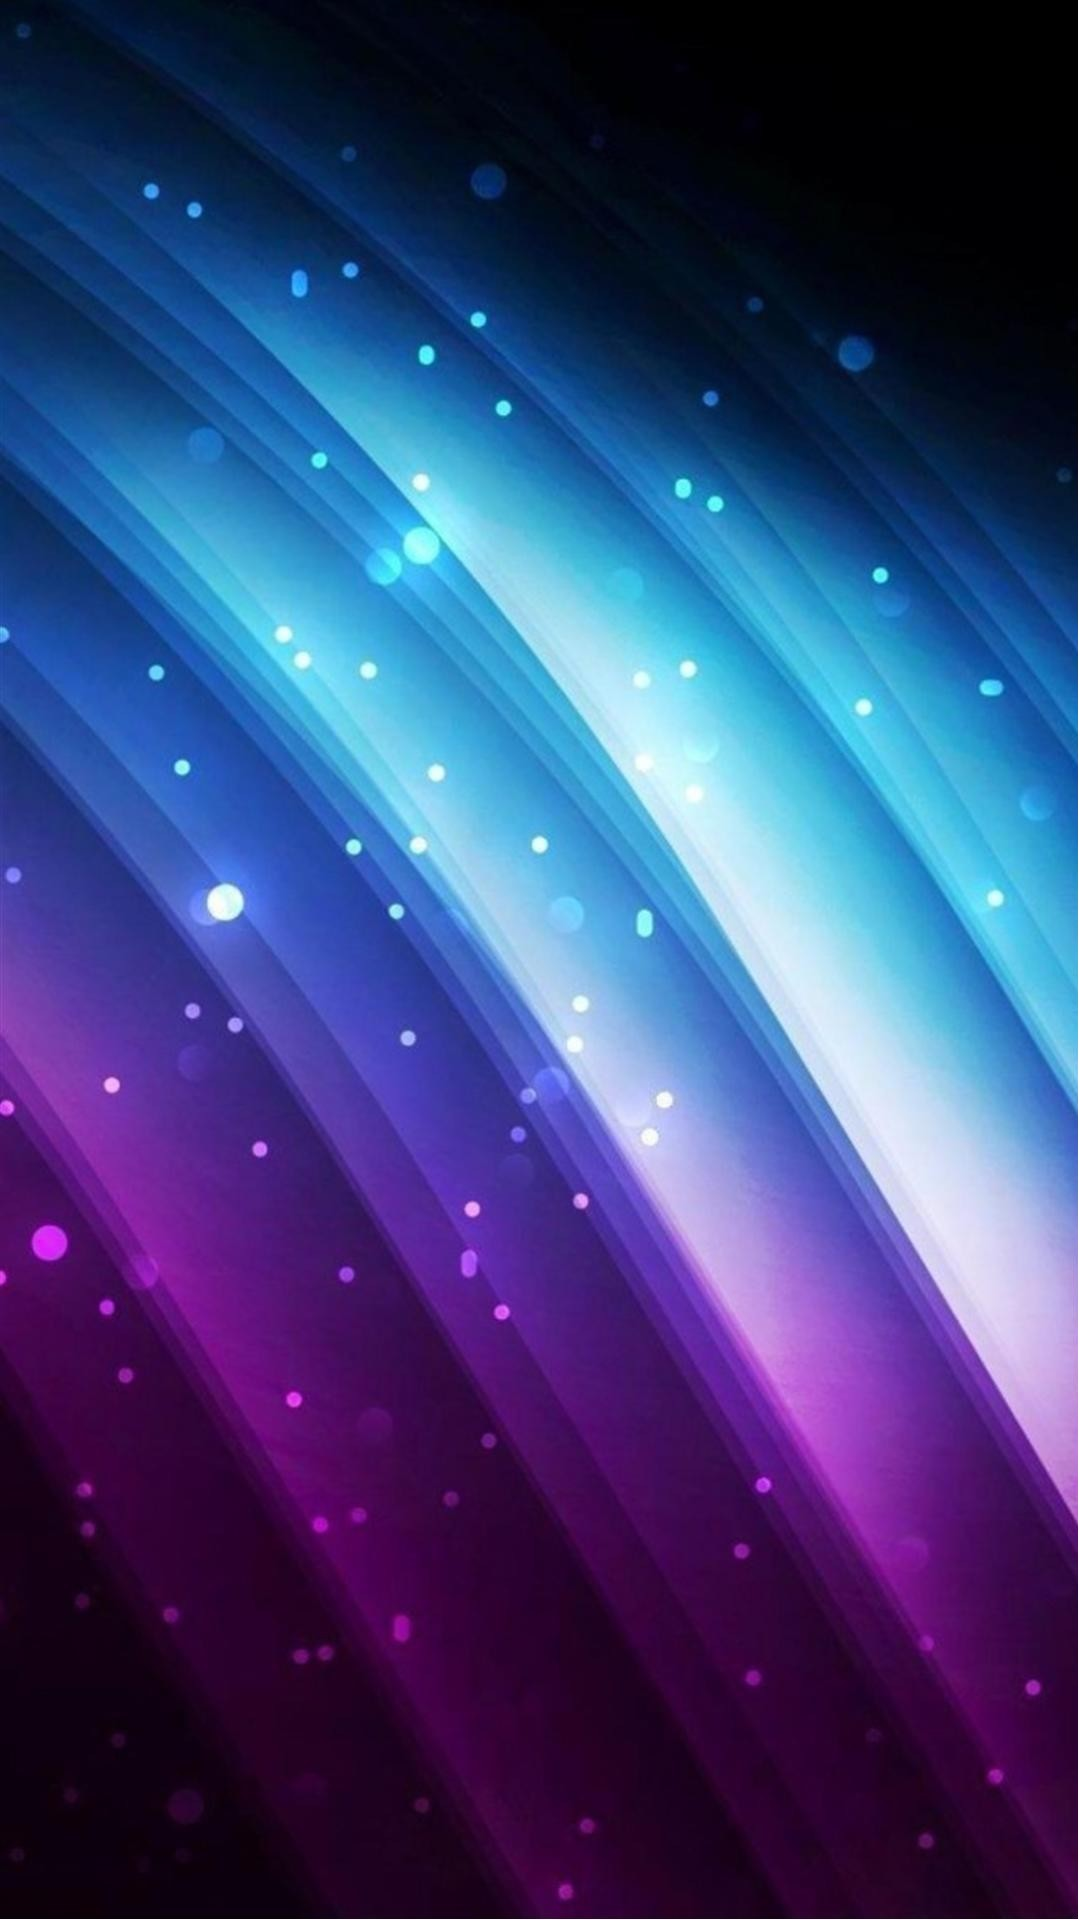 Mobile Wallpapers Themes Cool Backgrounds For Your Cell Phone 1080x1920